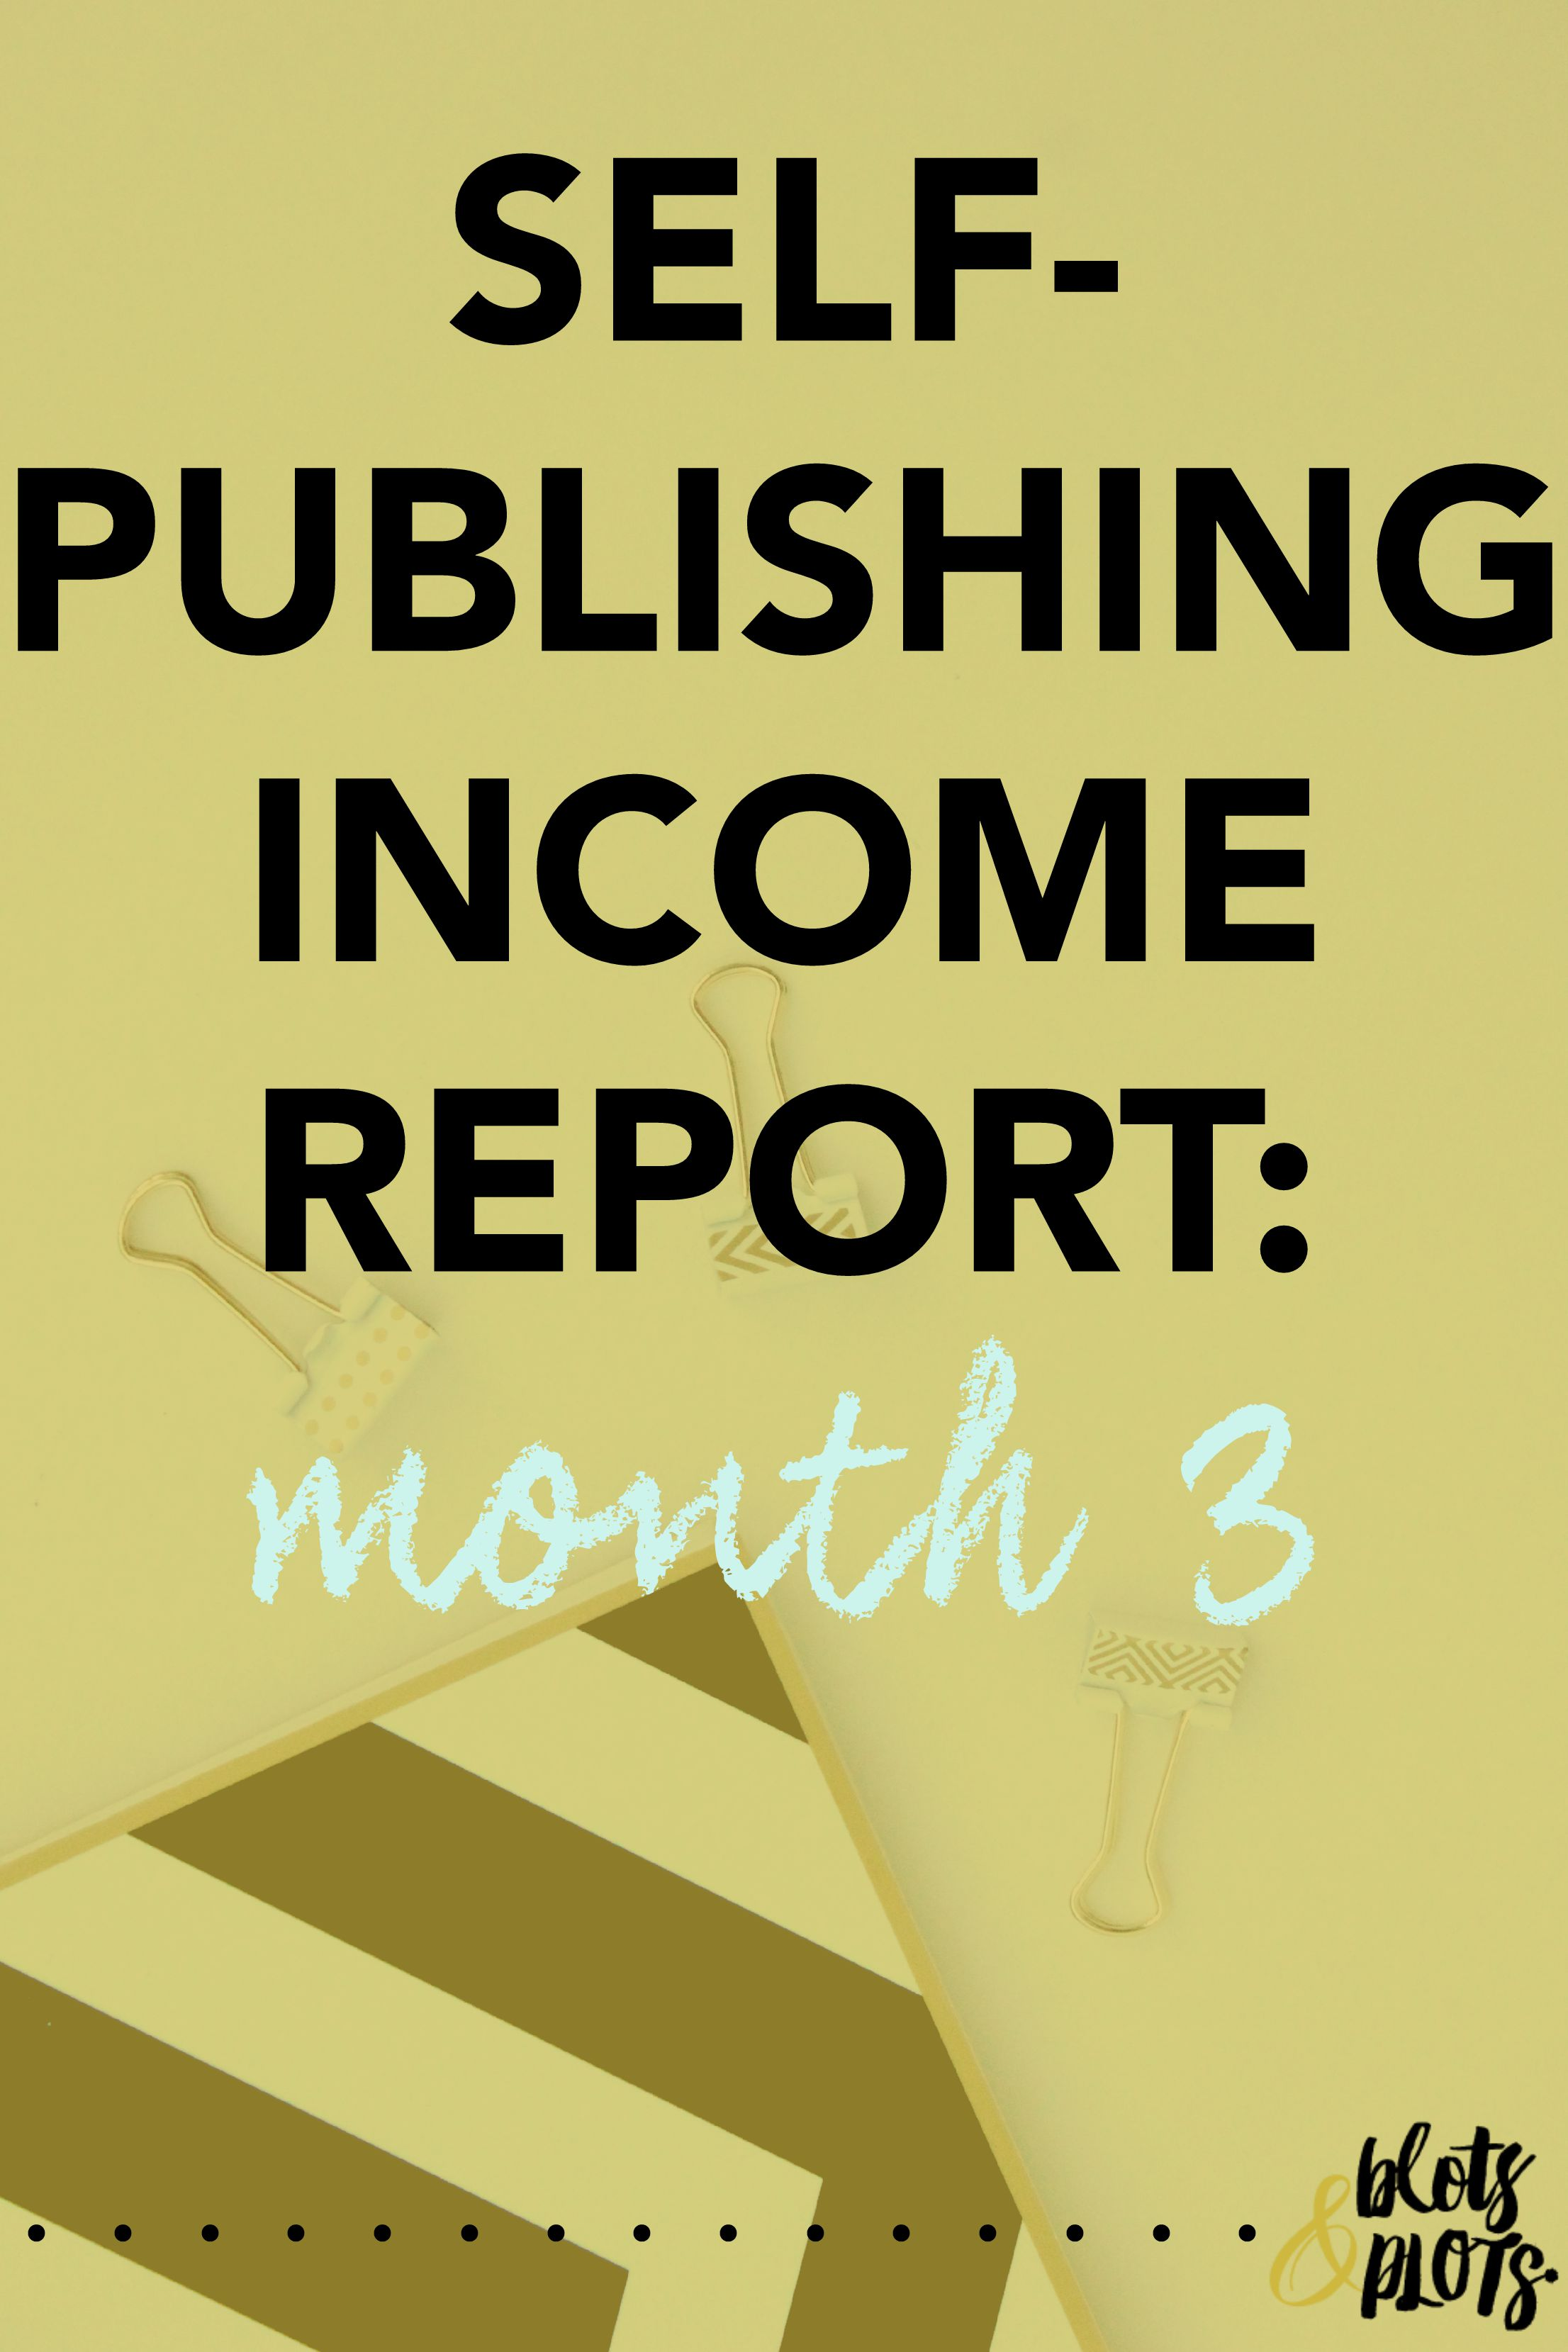 Self-Publishing Income Report 3.jpg